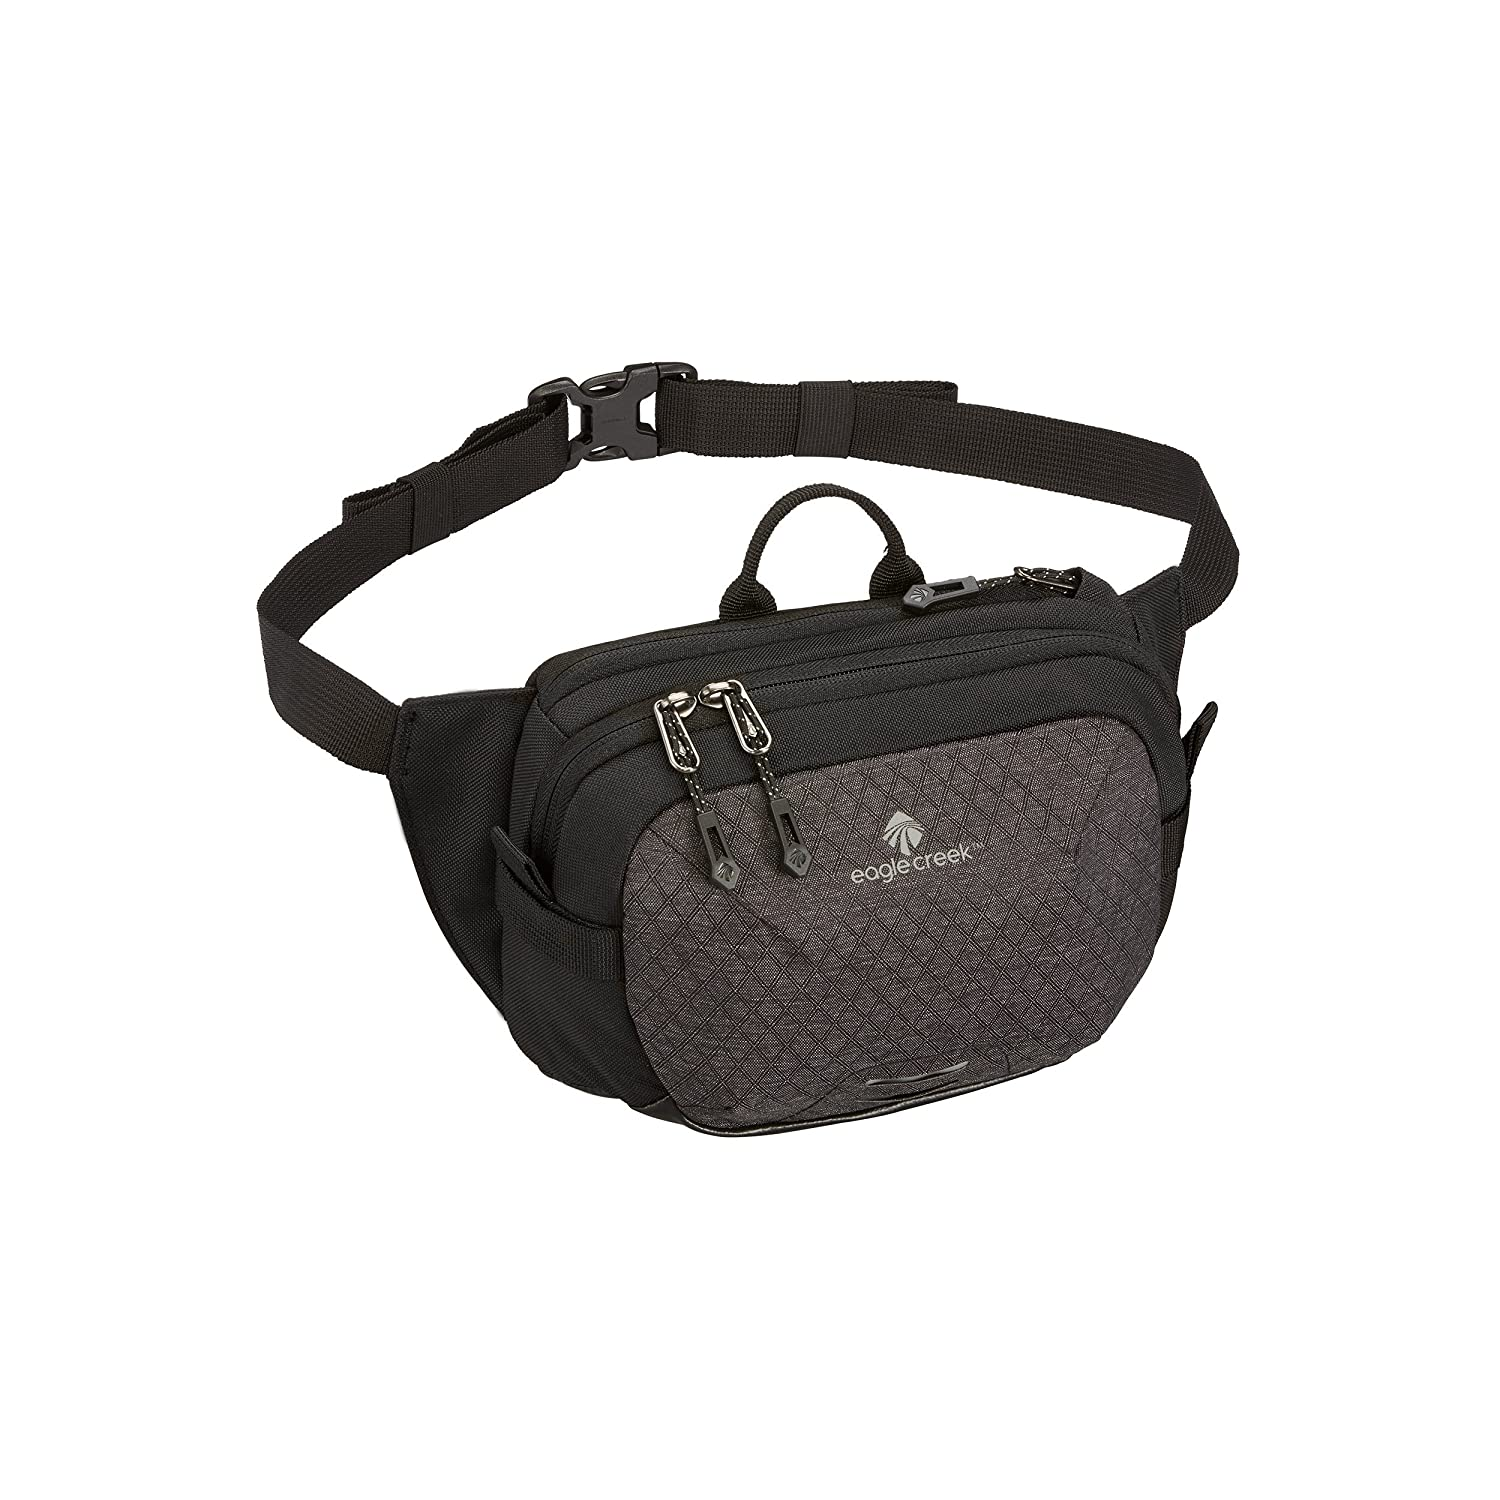 Eagle Creek Multiuse Fanny Travel Sport Waist Pack for E-Reader and Phone Black/Charcoal WAYFINDER WAIST PACK S